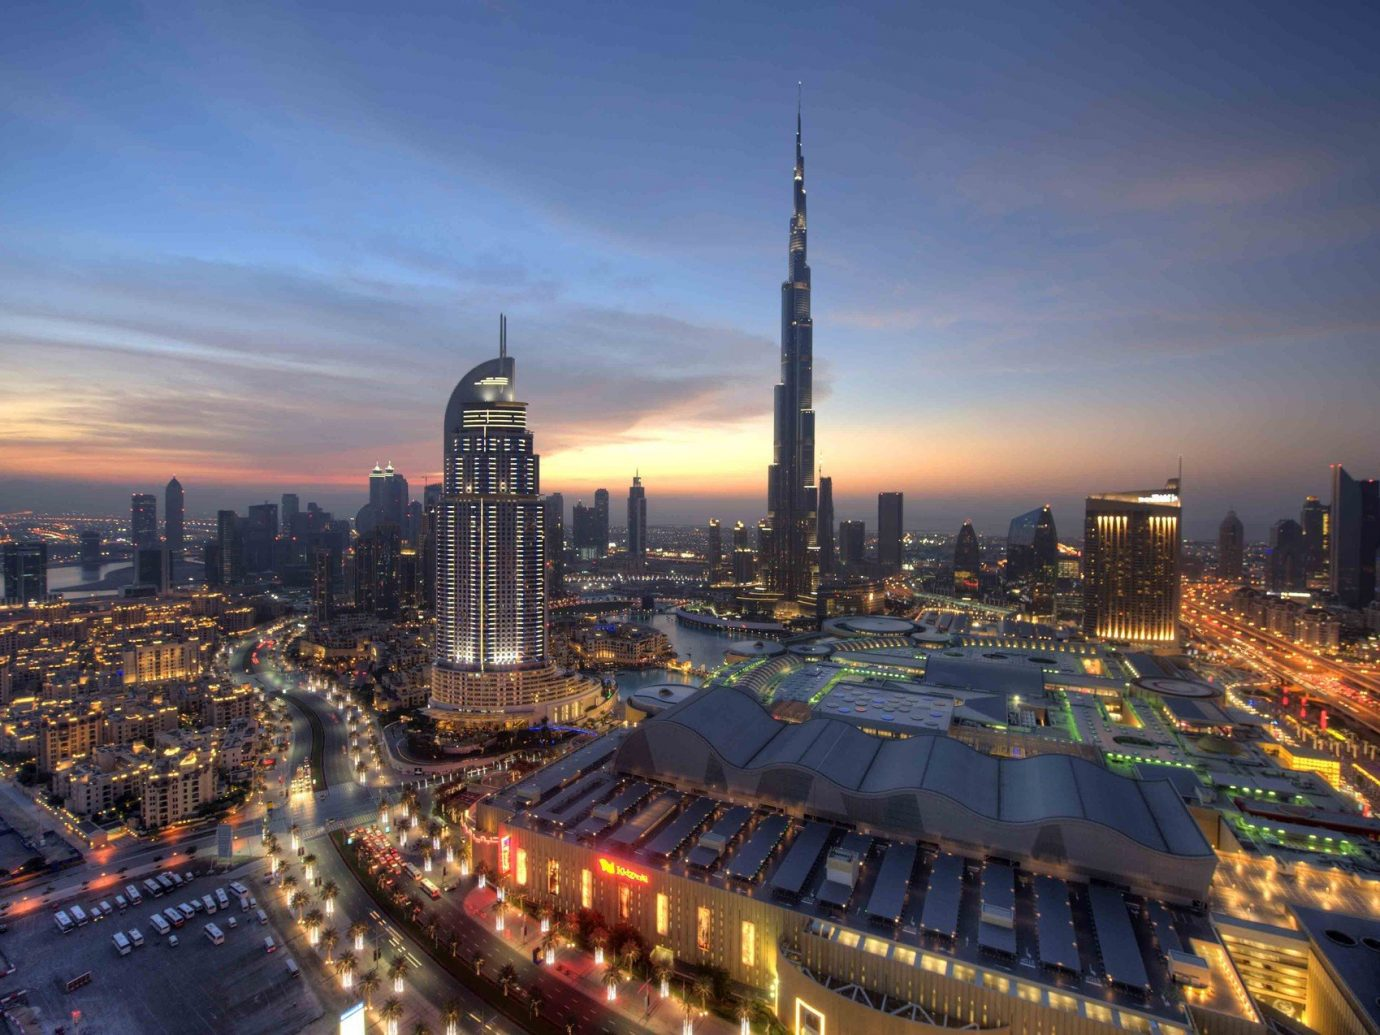 City city lights city views dusk lights Middle East night lights skyline skyscrapers Travel Tips sky outdoor metropolitan area metropolis cityscape skyscraper landmark urban area photography night horizon human settlement Downtown evening tower aerial photography panorama tower block